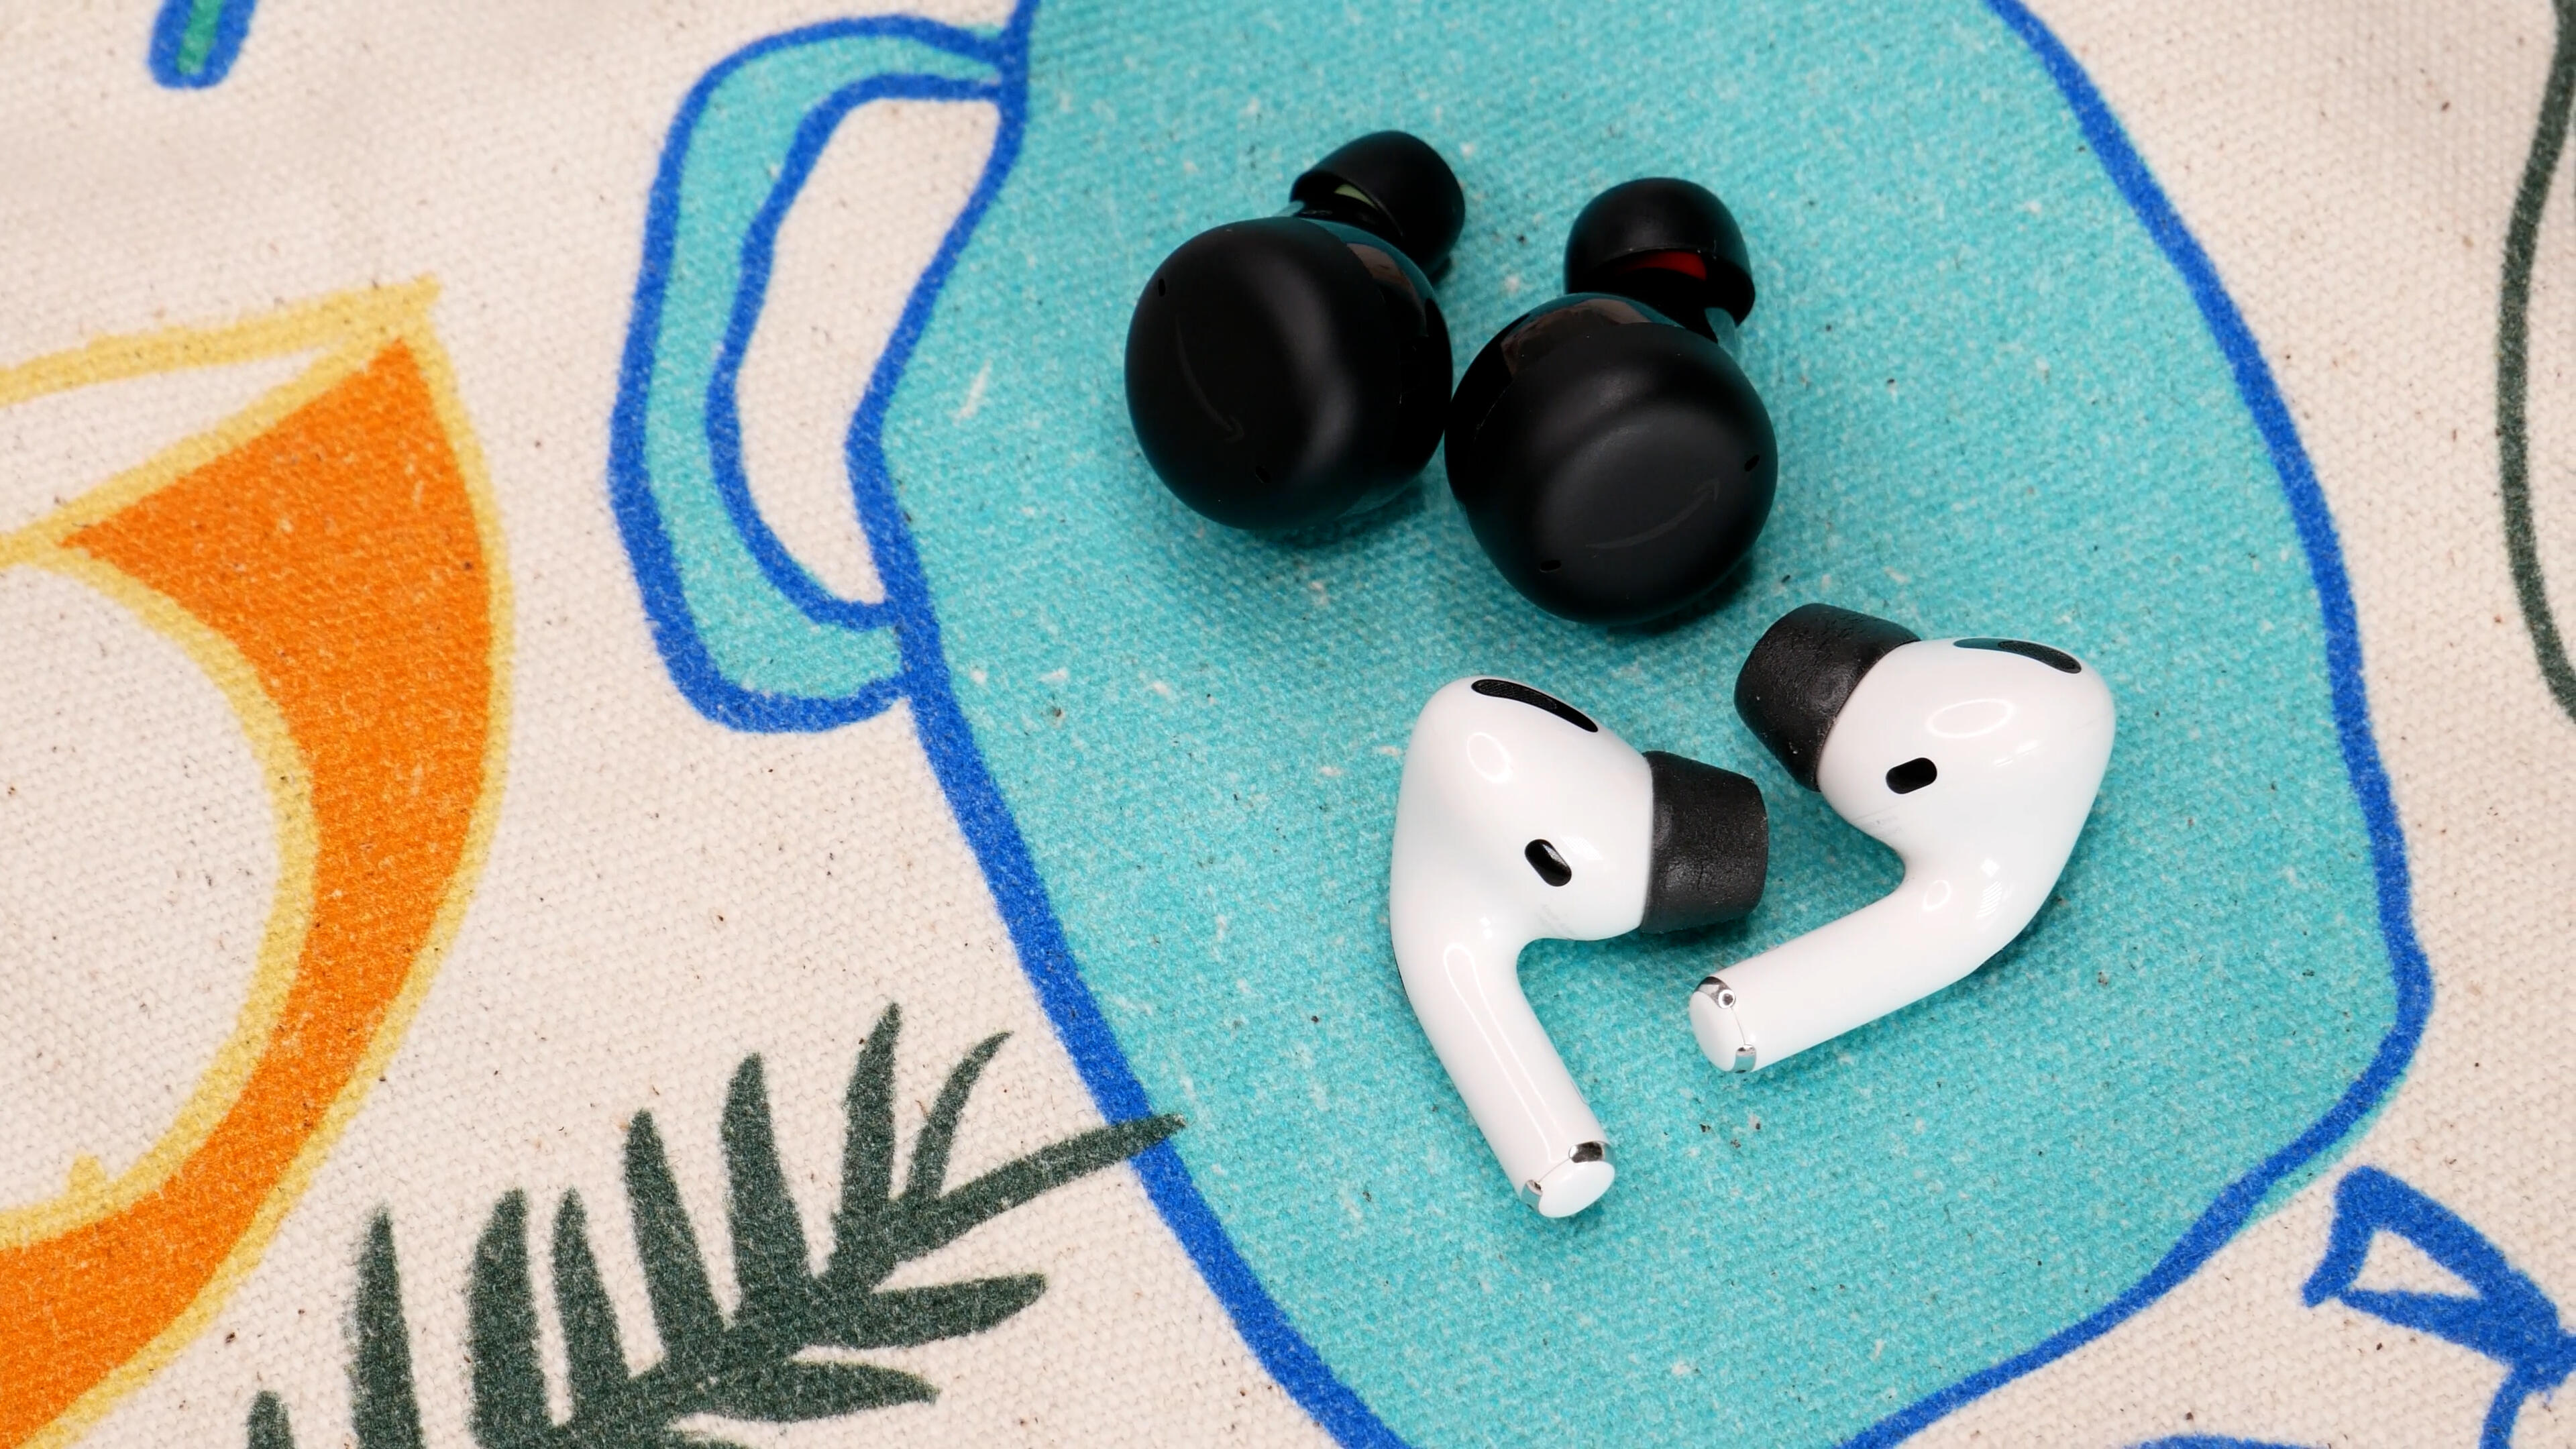 Video: Comparing Apple AirPods Pro to Amazon Echo Buds 2